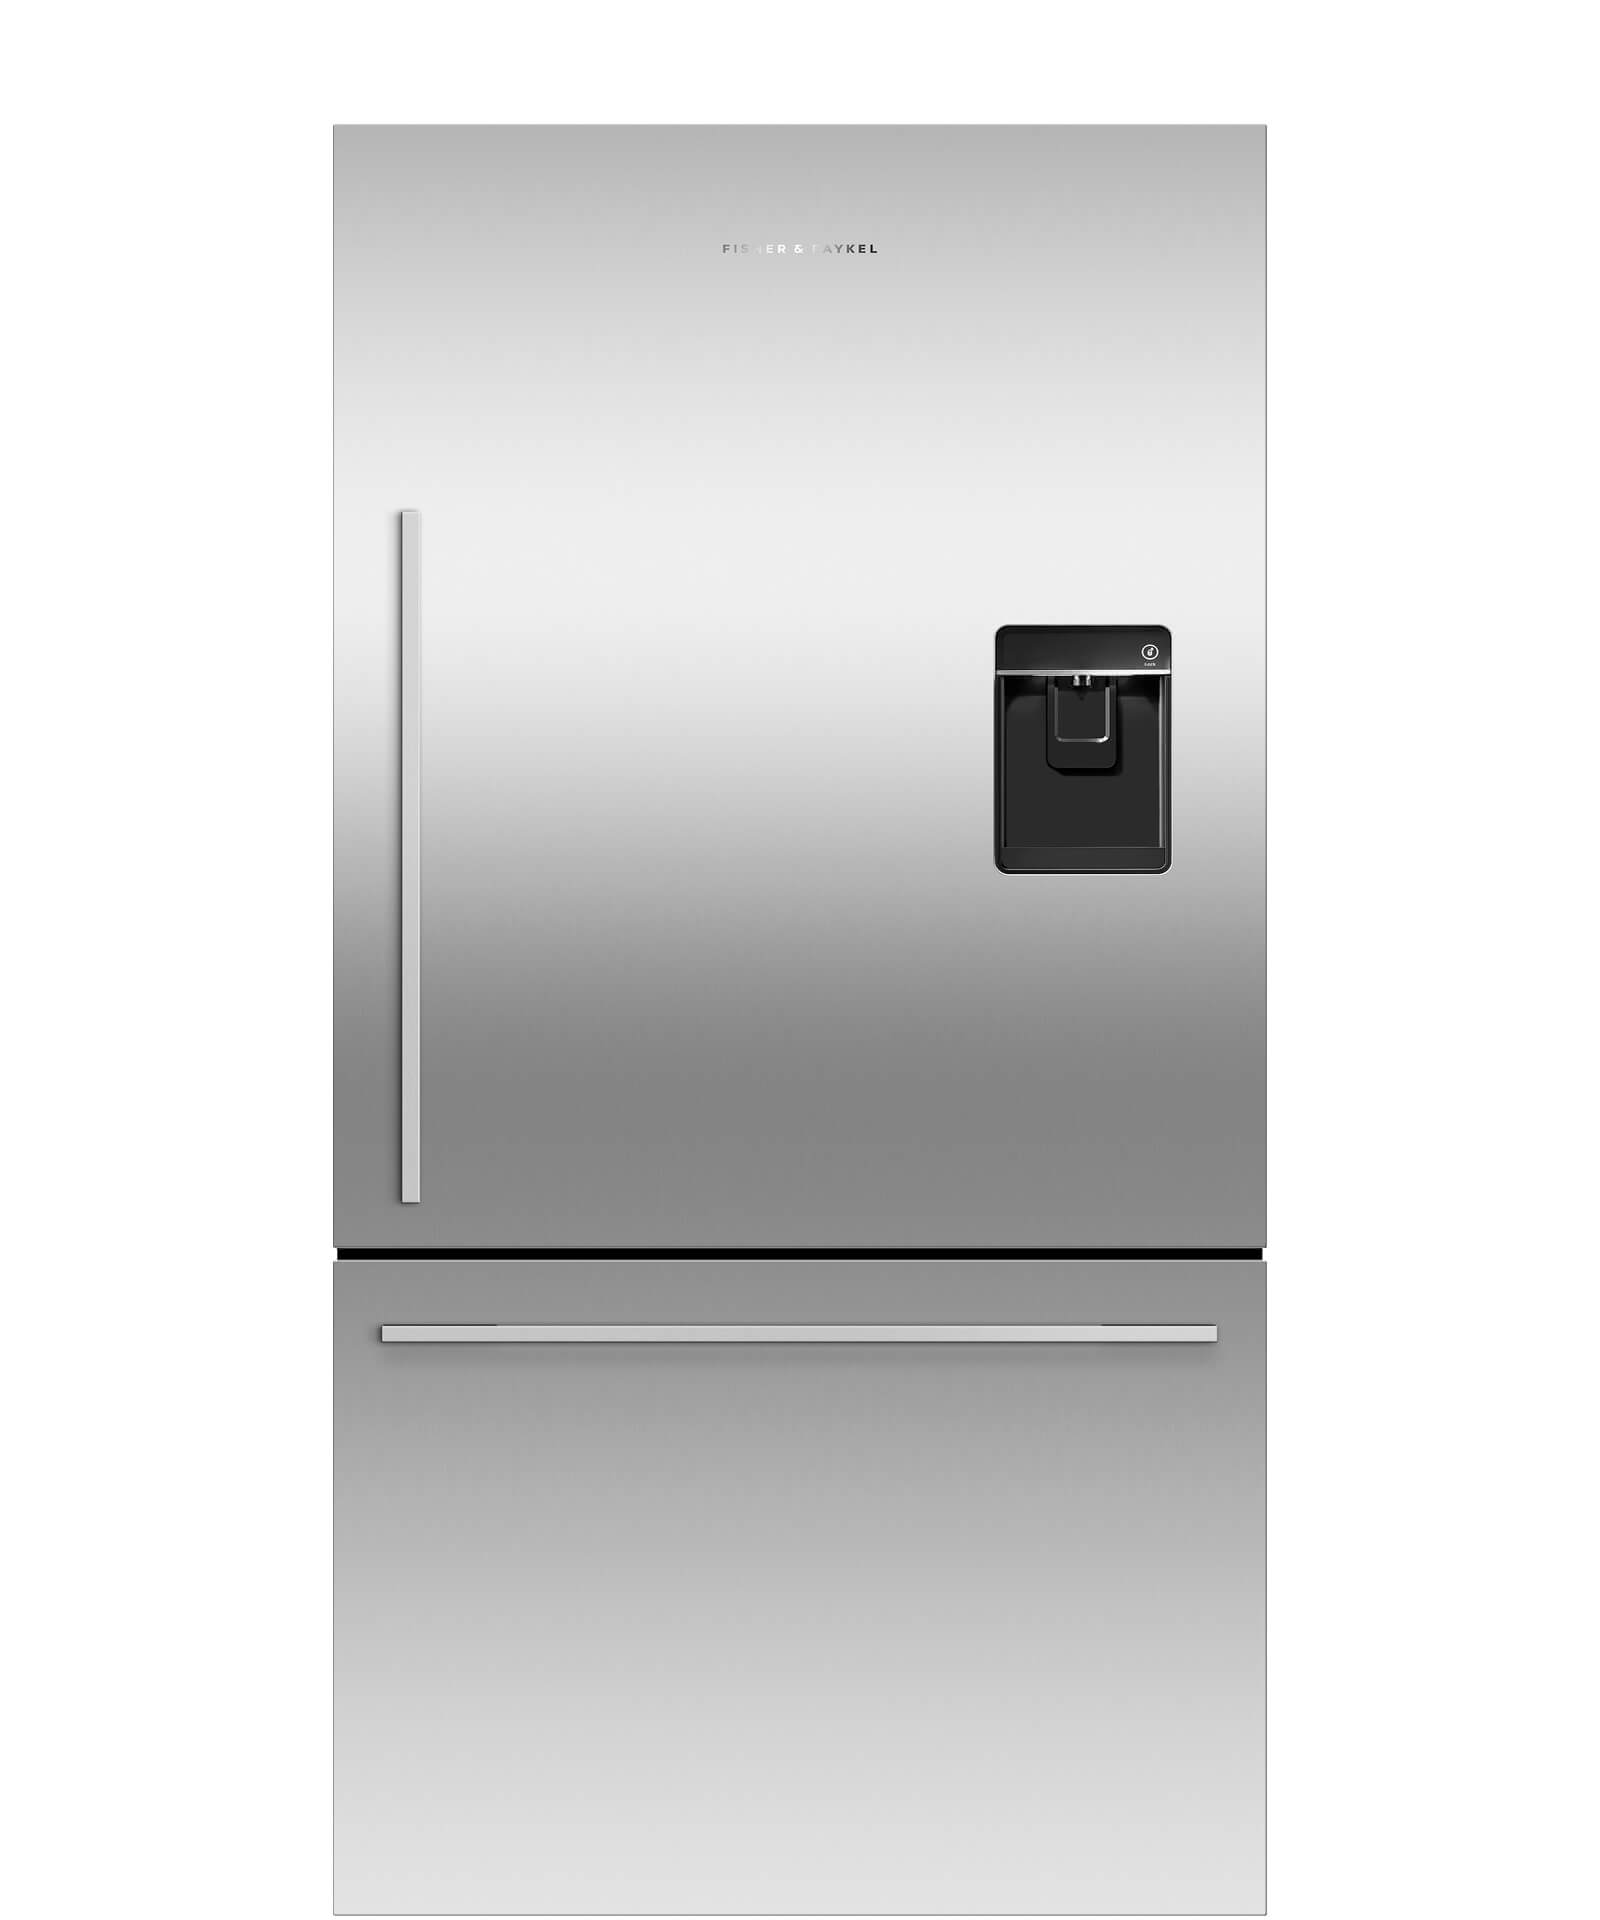 rf522wdrux4 stainless steel fridge freezer 790mm ice water rh fisherpaykel com Fisher Paykel Appliances Fisher and Paykel Fridge Drawers